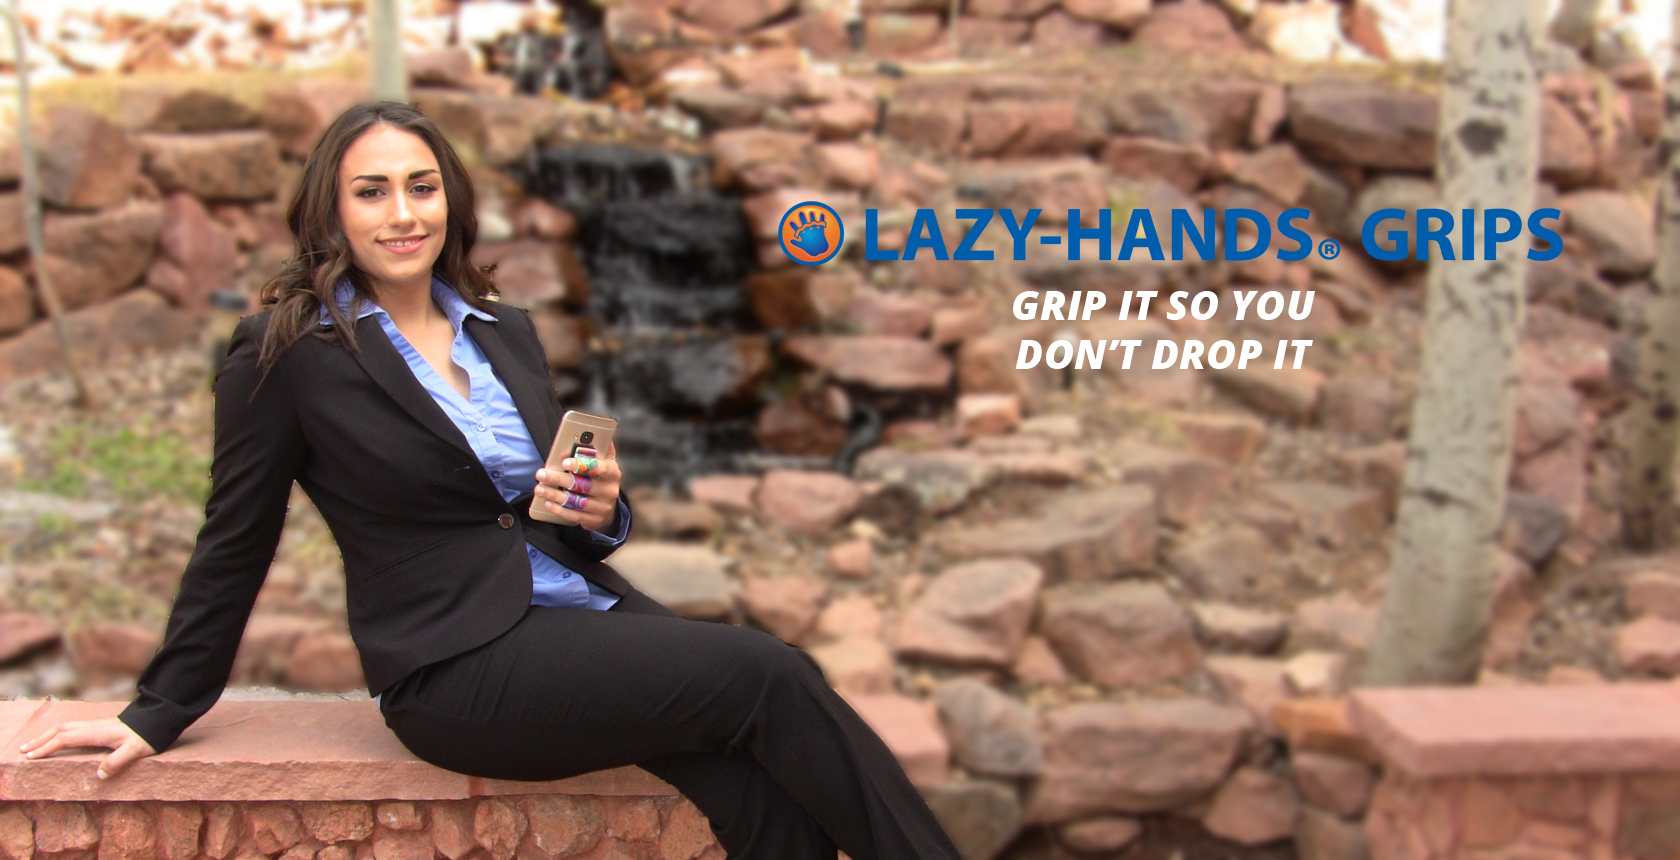 LAZY-HANDS Thumbs-Free Grips For Mobile Devices Phone Grip